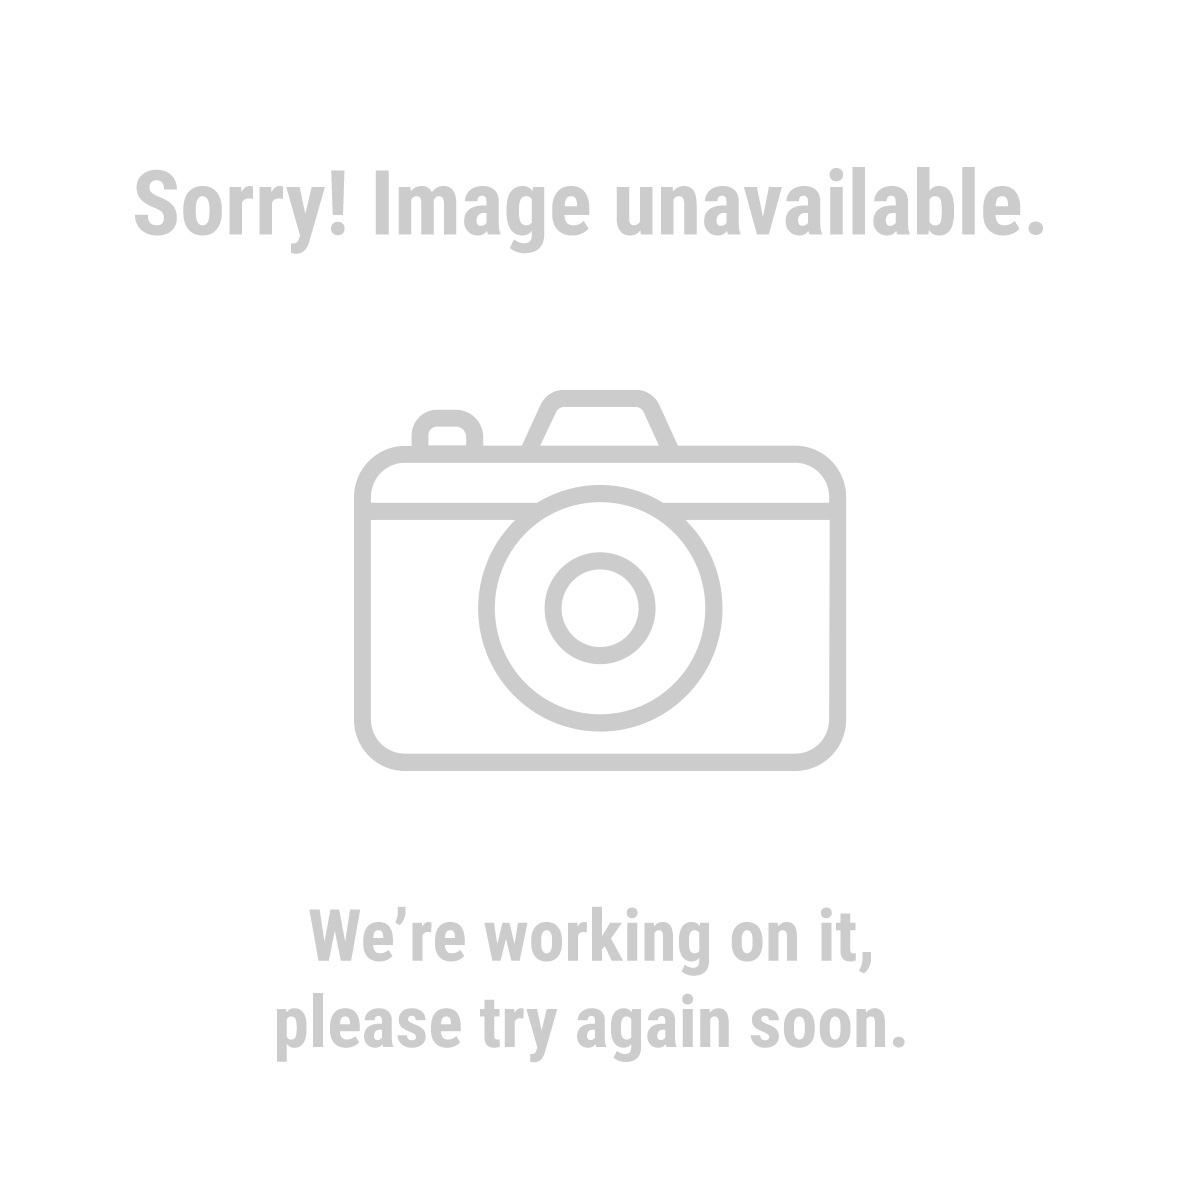 Pittsburgh Professional 67988 High Visibility 1/2 in. Drive Metric Socket Set 16 Pc